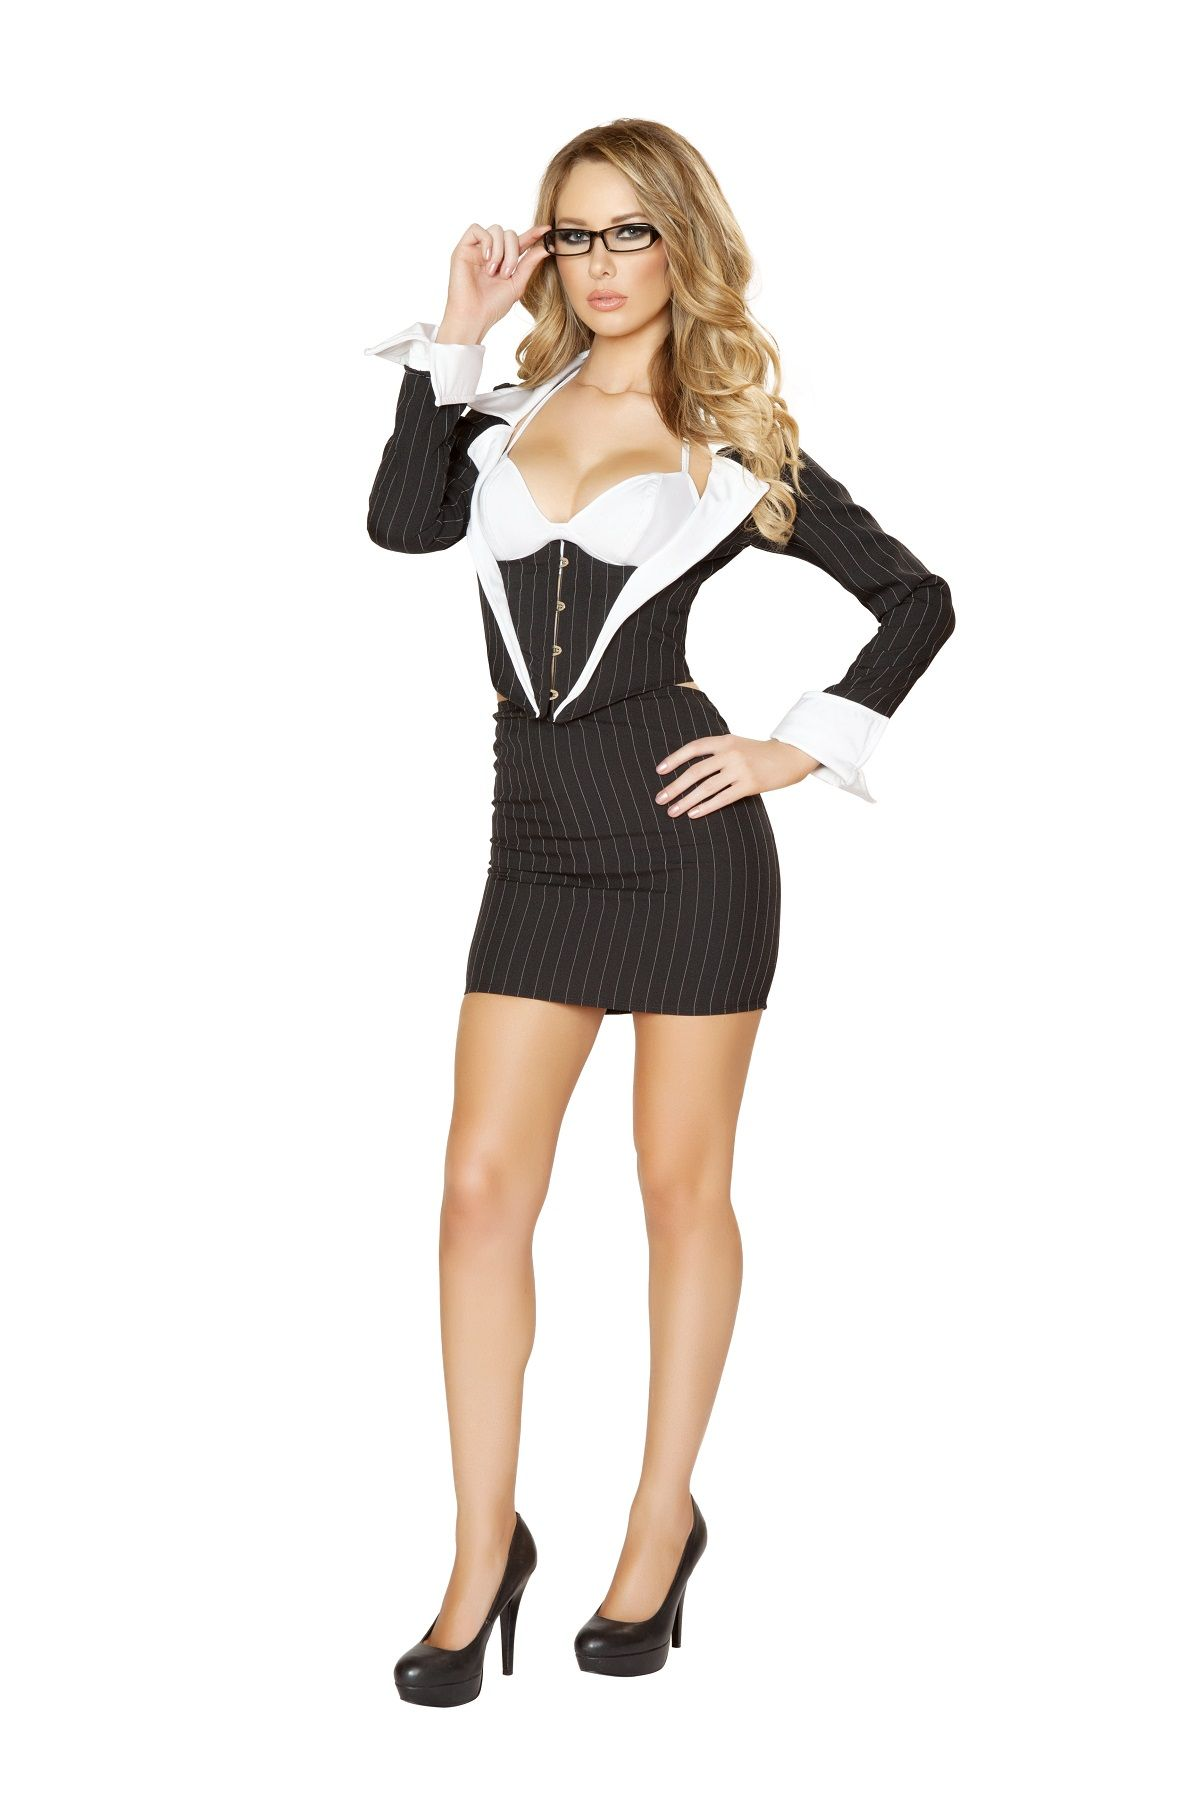 3 pc sassy secretary costume includes bra top jacket with busk closure and skirt - Naughty Librarian Halloween Costume